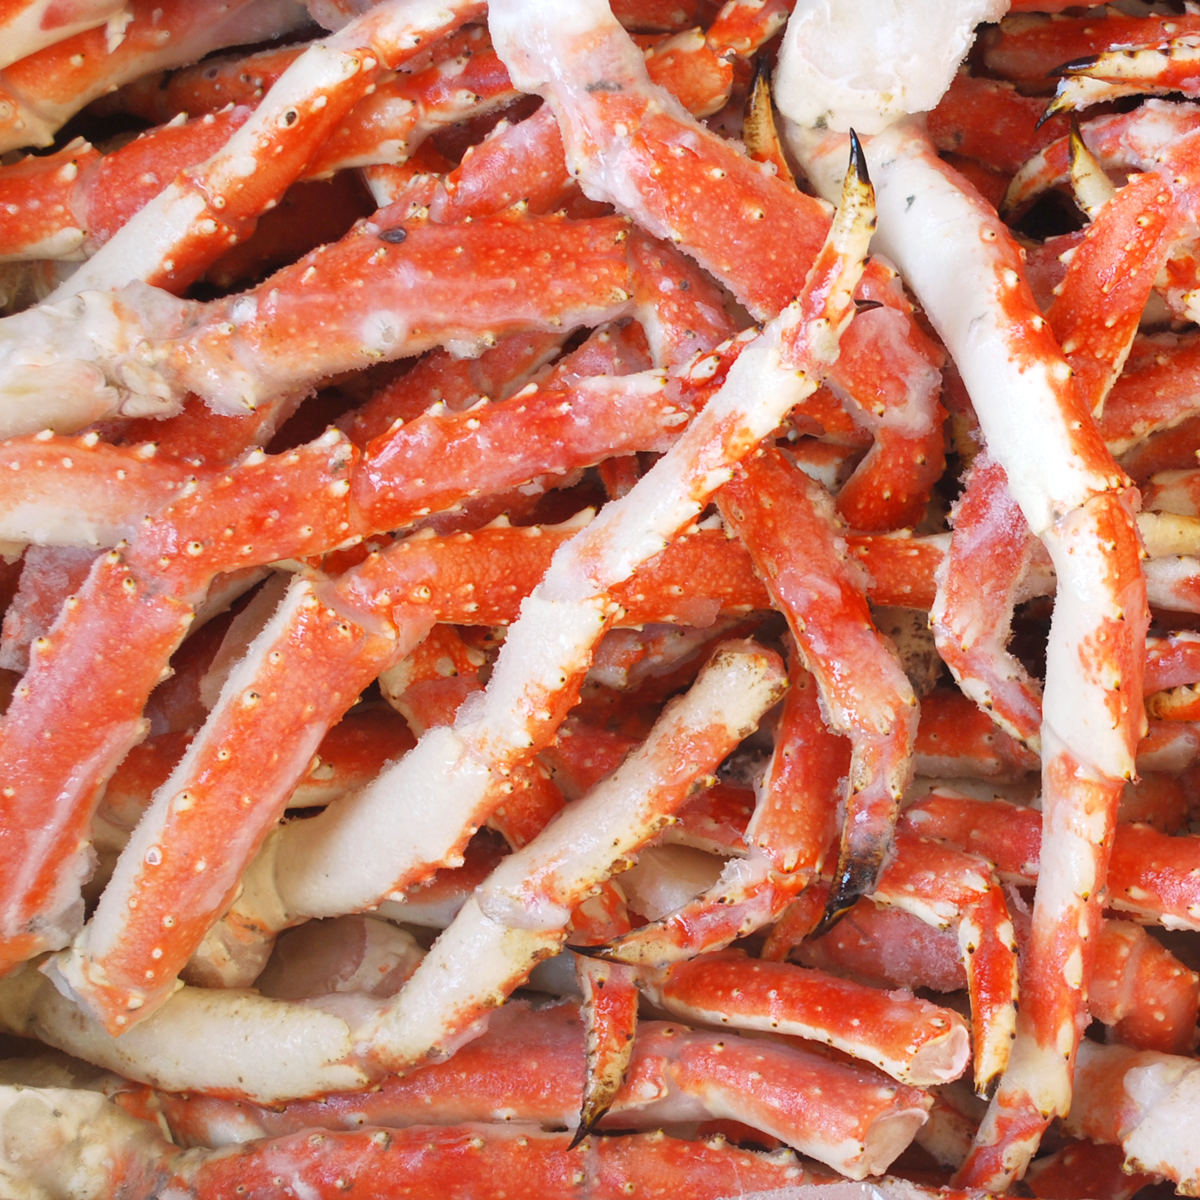 CRA121-Crab-King-Red-Leg-Claw-Cooked.jpg